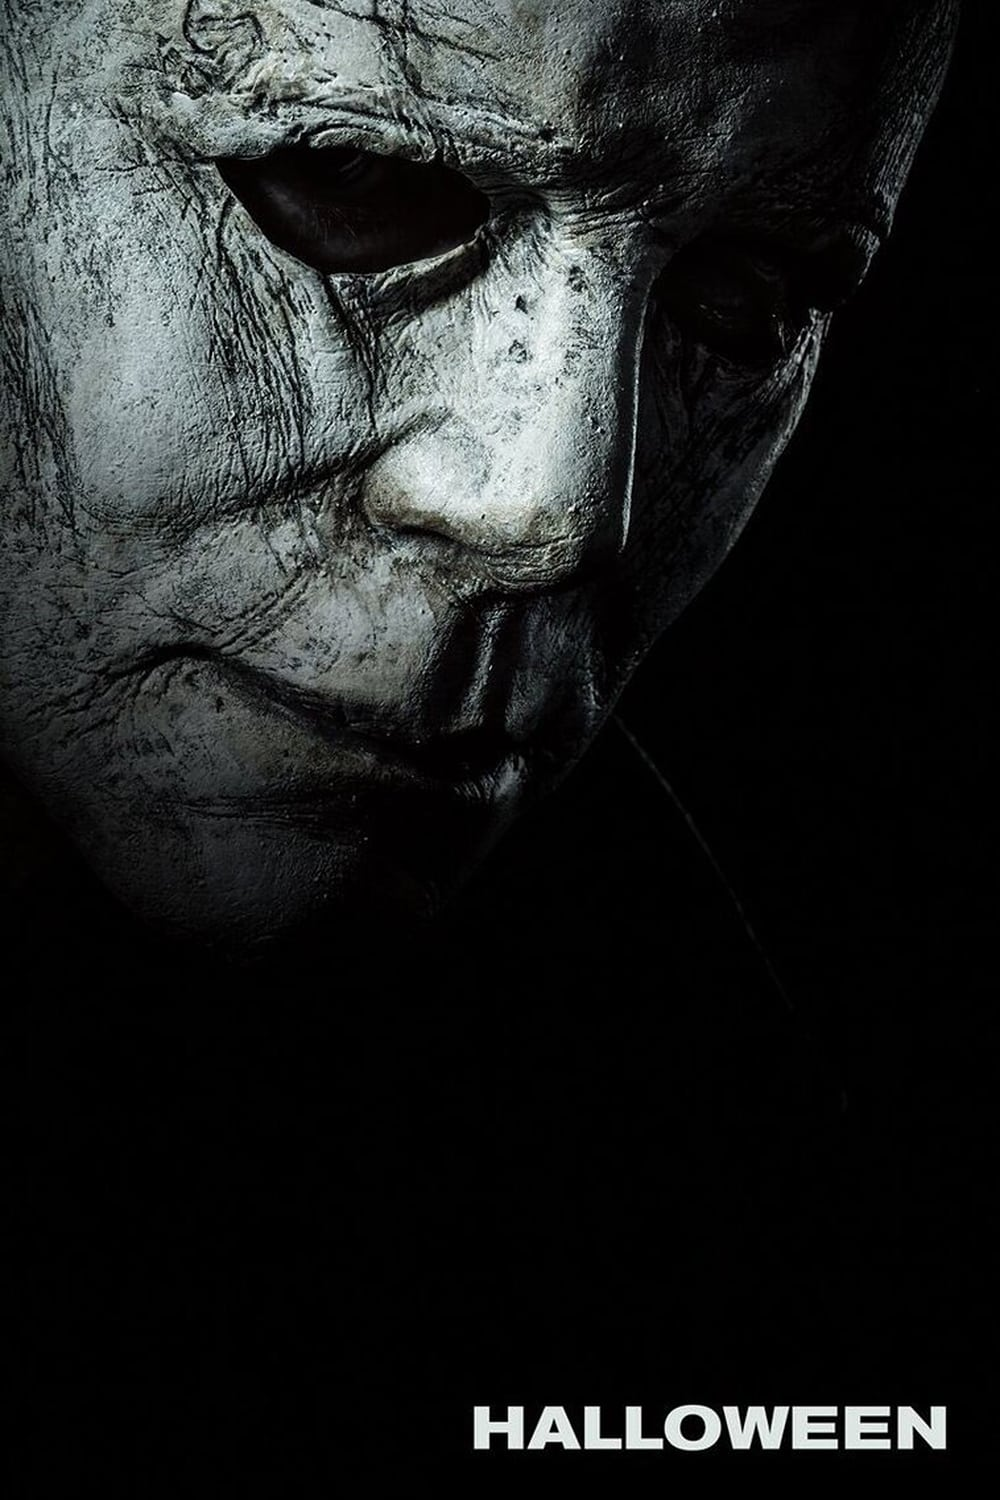 Poster and image movie Film Halloween - Halloween 2018